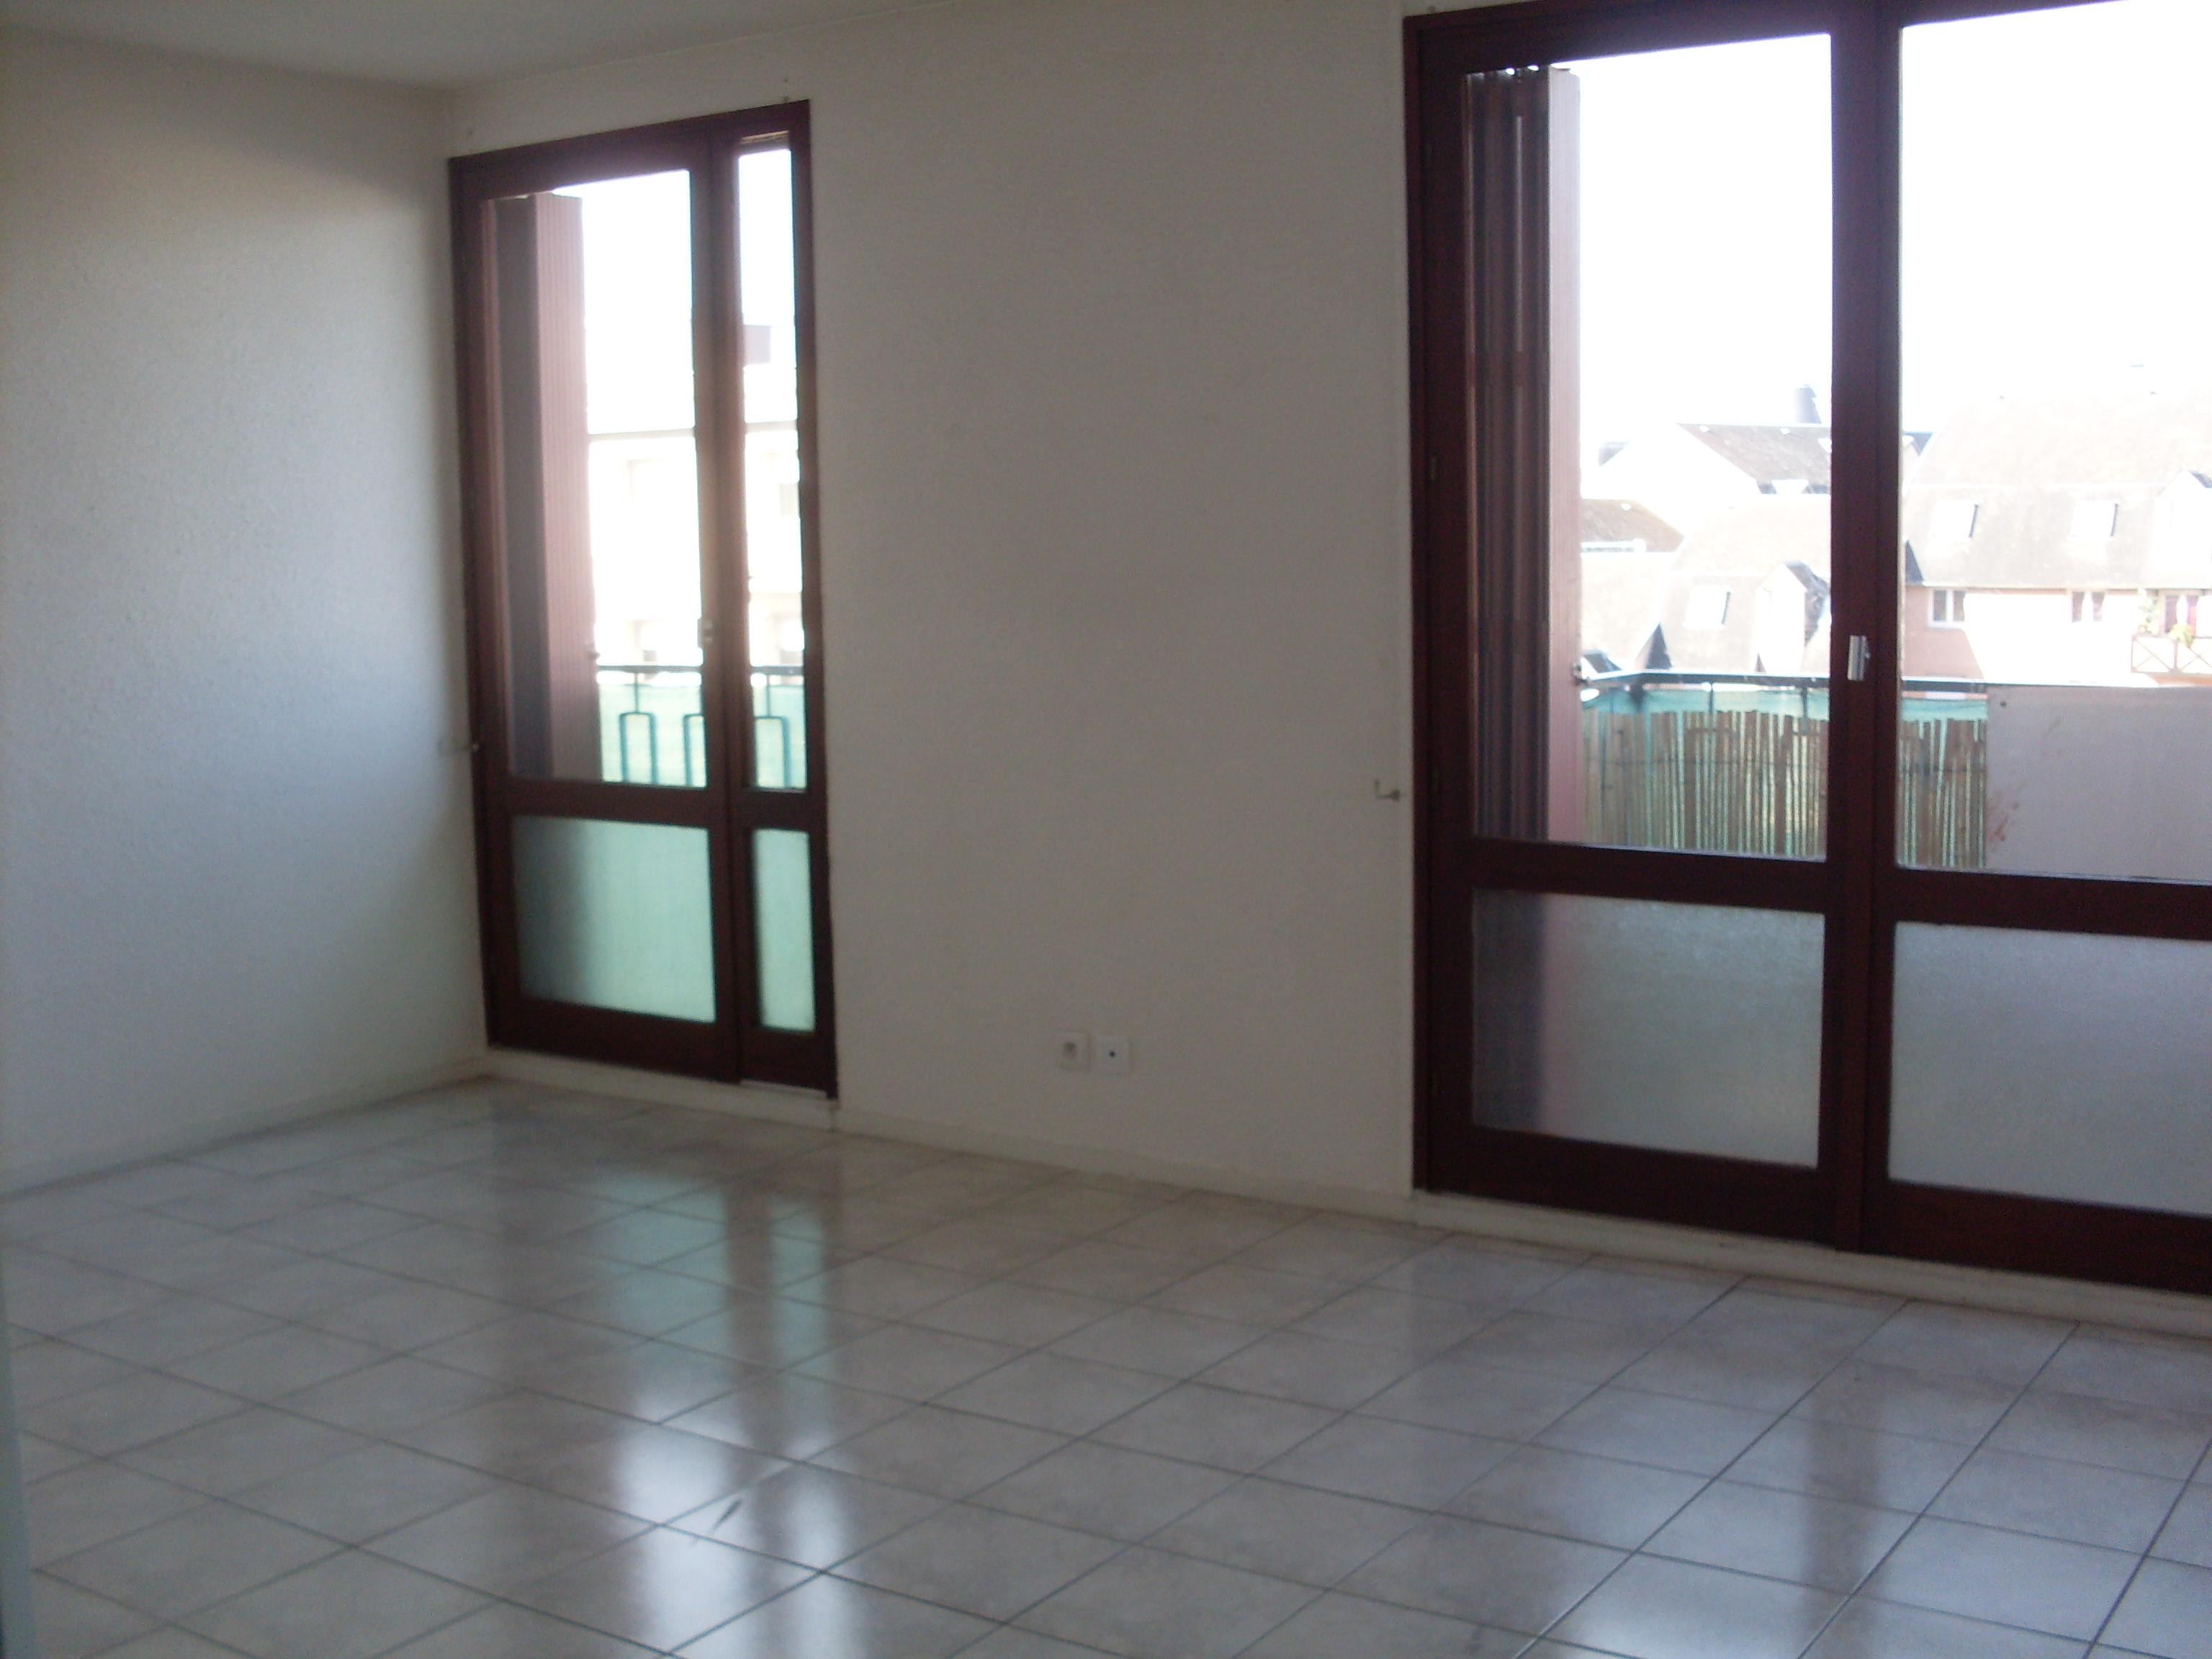 LOCATION MONTLUCON APPARTEMENT F4 TRES LUMINEUX